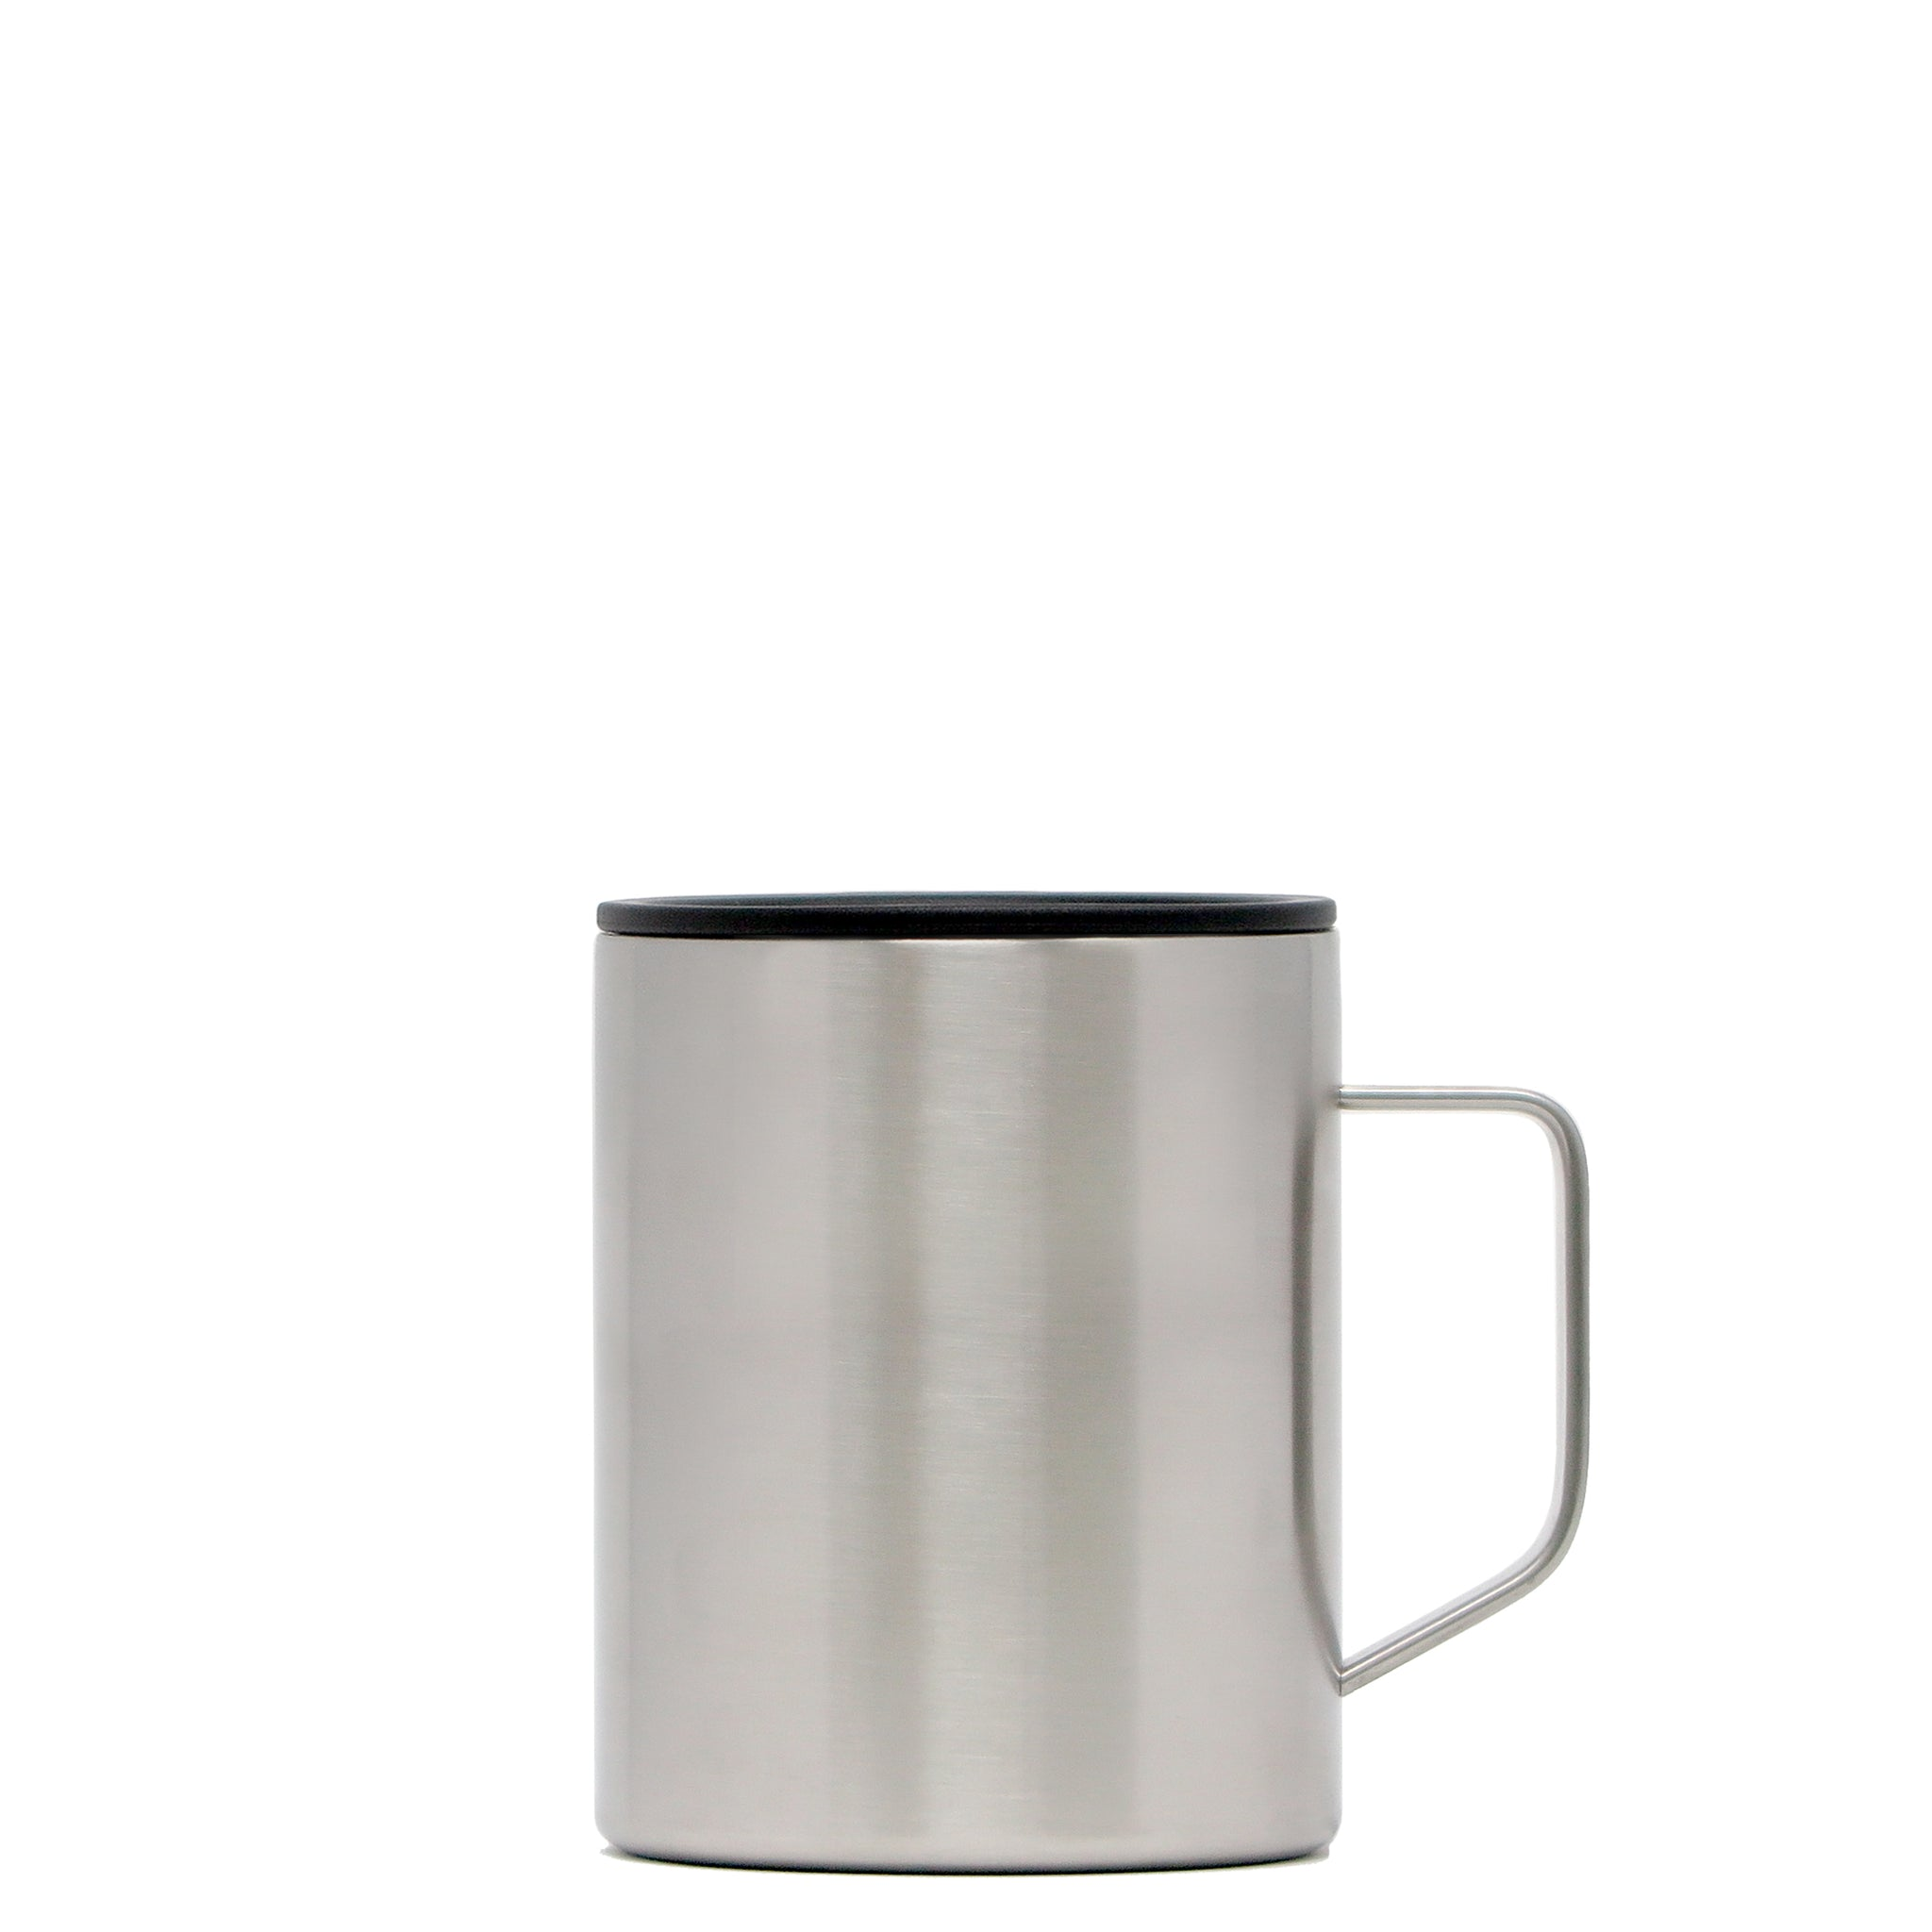 14 oz CAMP CUP